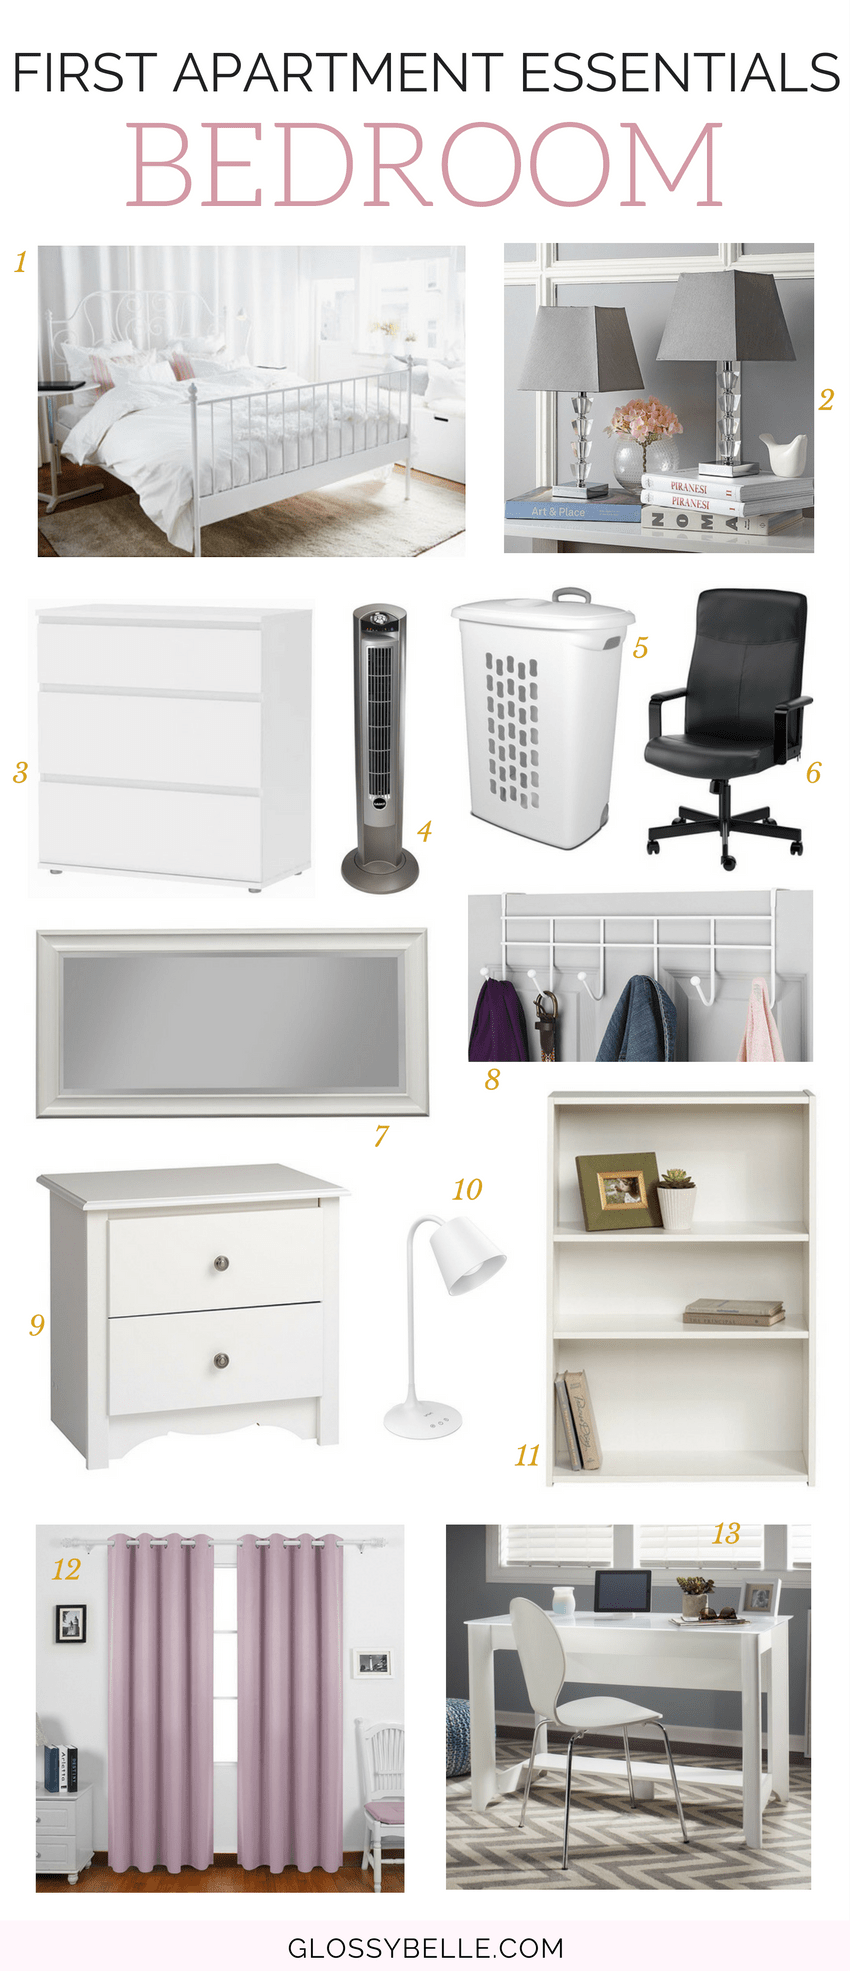 If you're about to move out into your first apartment, here are the most important apartment essentials you'll need to be ready to move out on your own. | adulting | move out for the first time | moving out | independence | college essentials | college dorm | room essentials | home decor | bedroom essentials #apartment #furniture #furnitureideas #adulting #homedecor #bedroomideas #bedroomdecor #bedroomdecoratingideas